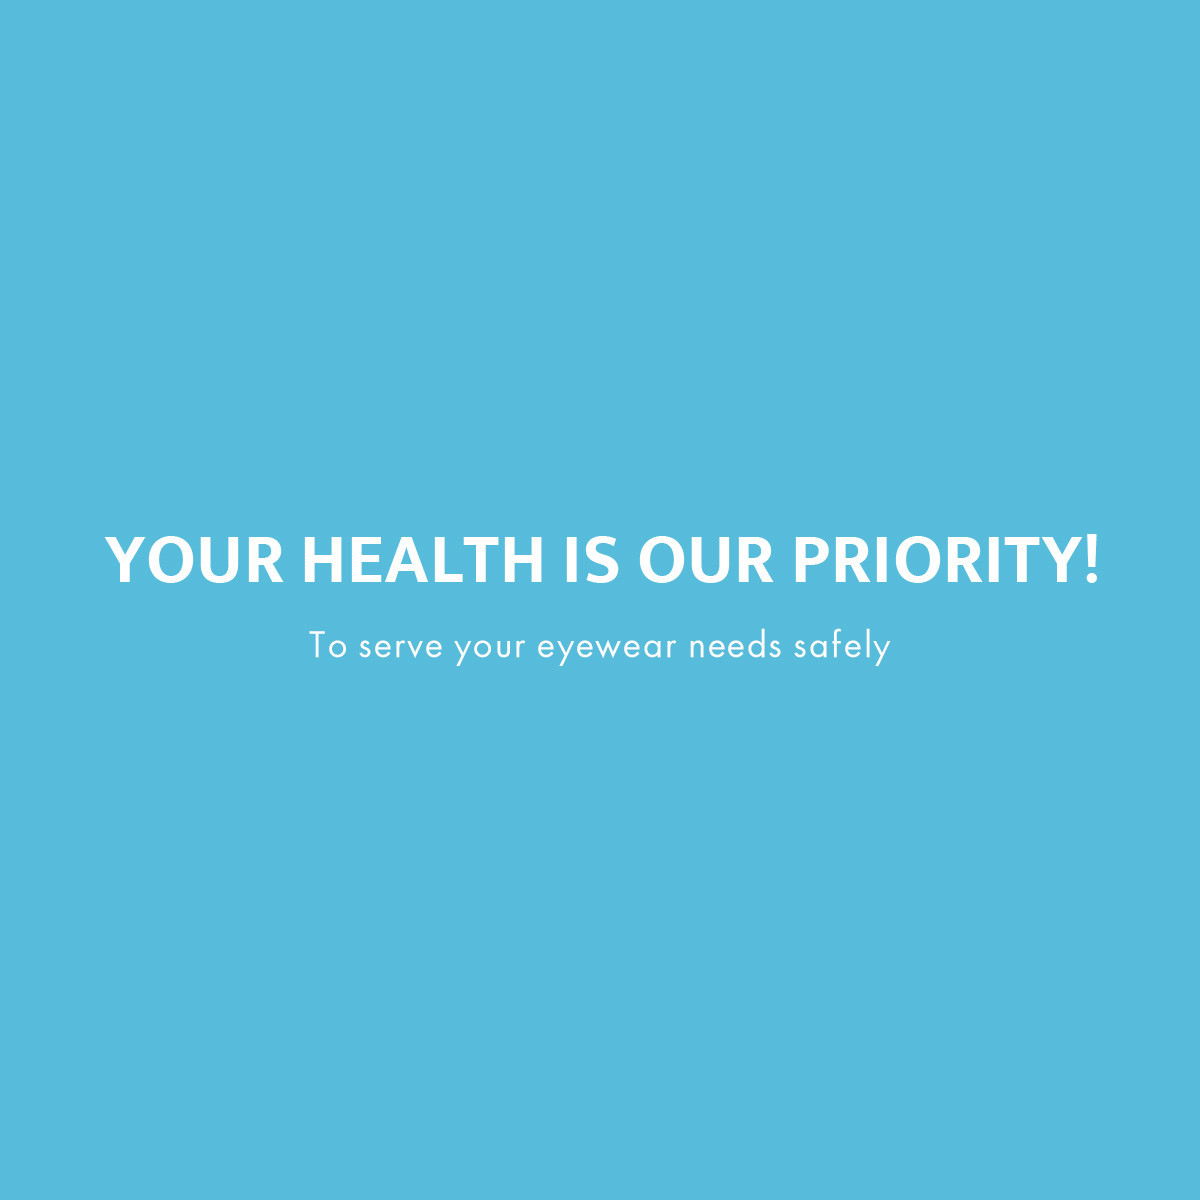 YOUR HEALTH IS OUR PRIORITY!